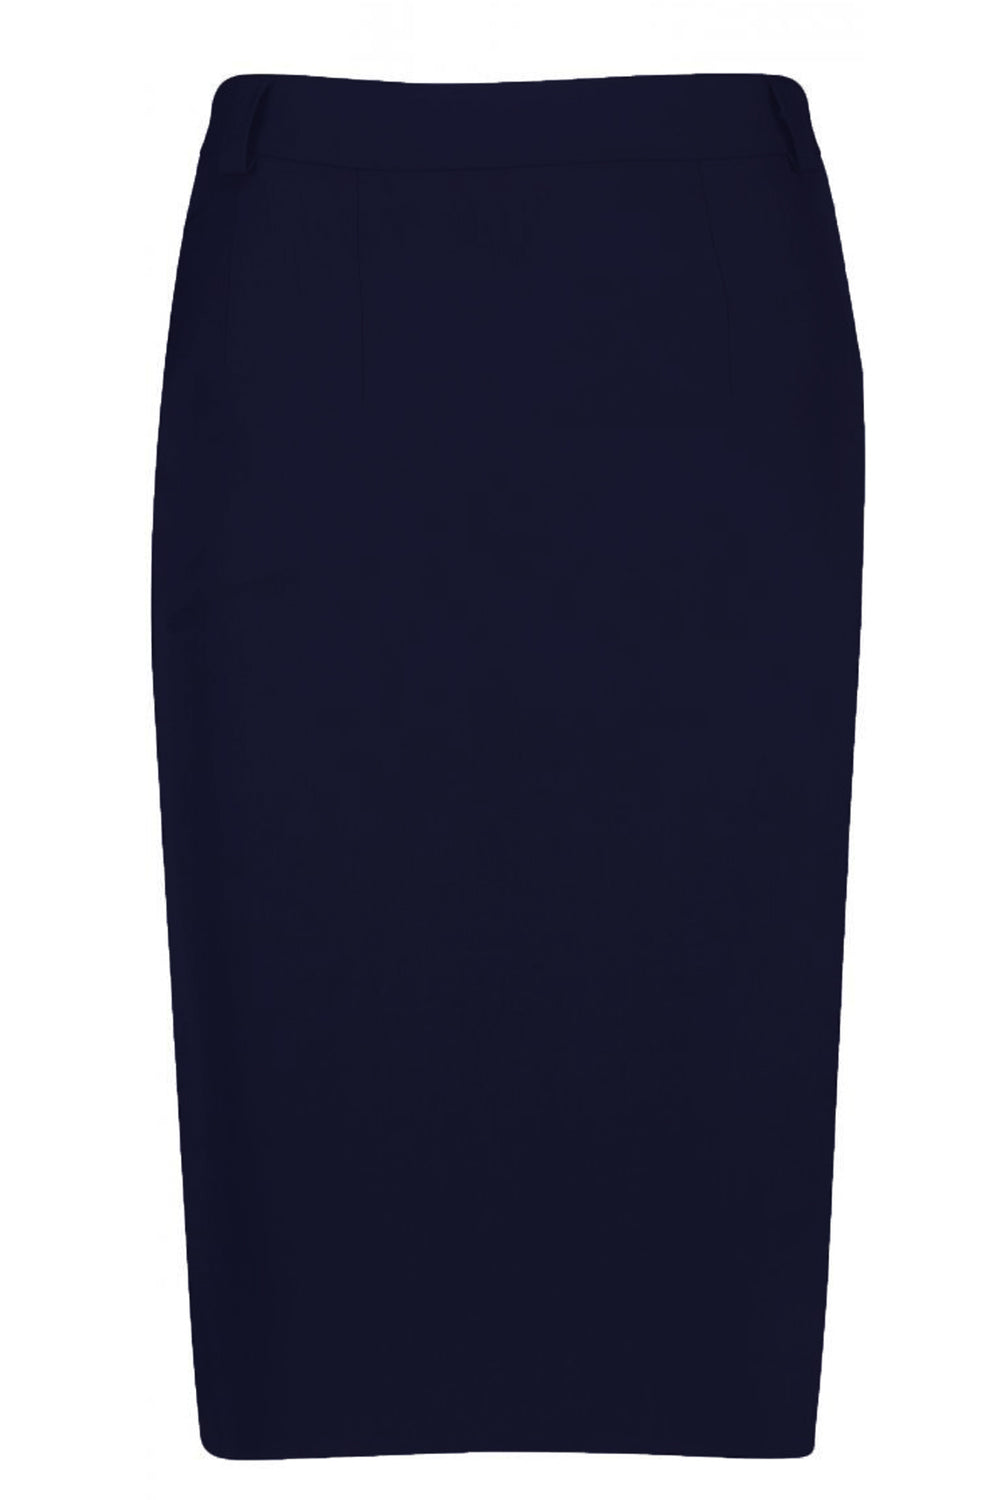 Ladies Below Knee Skirt